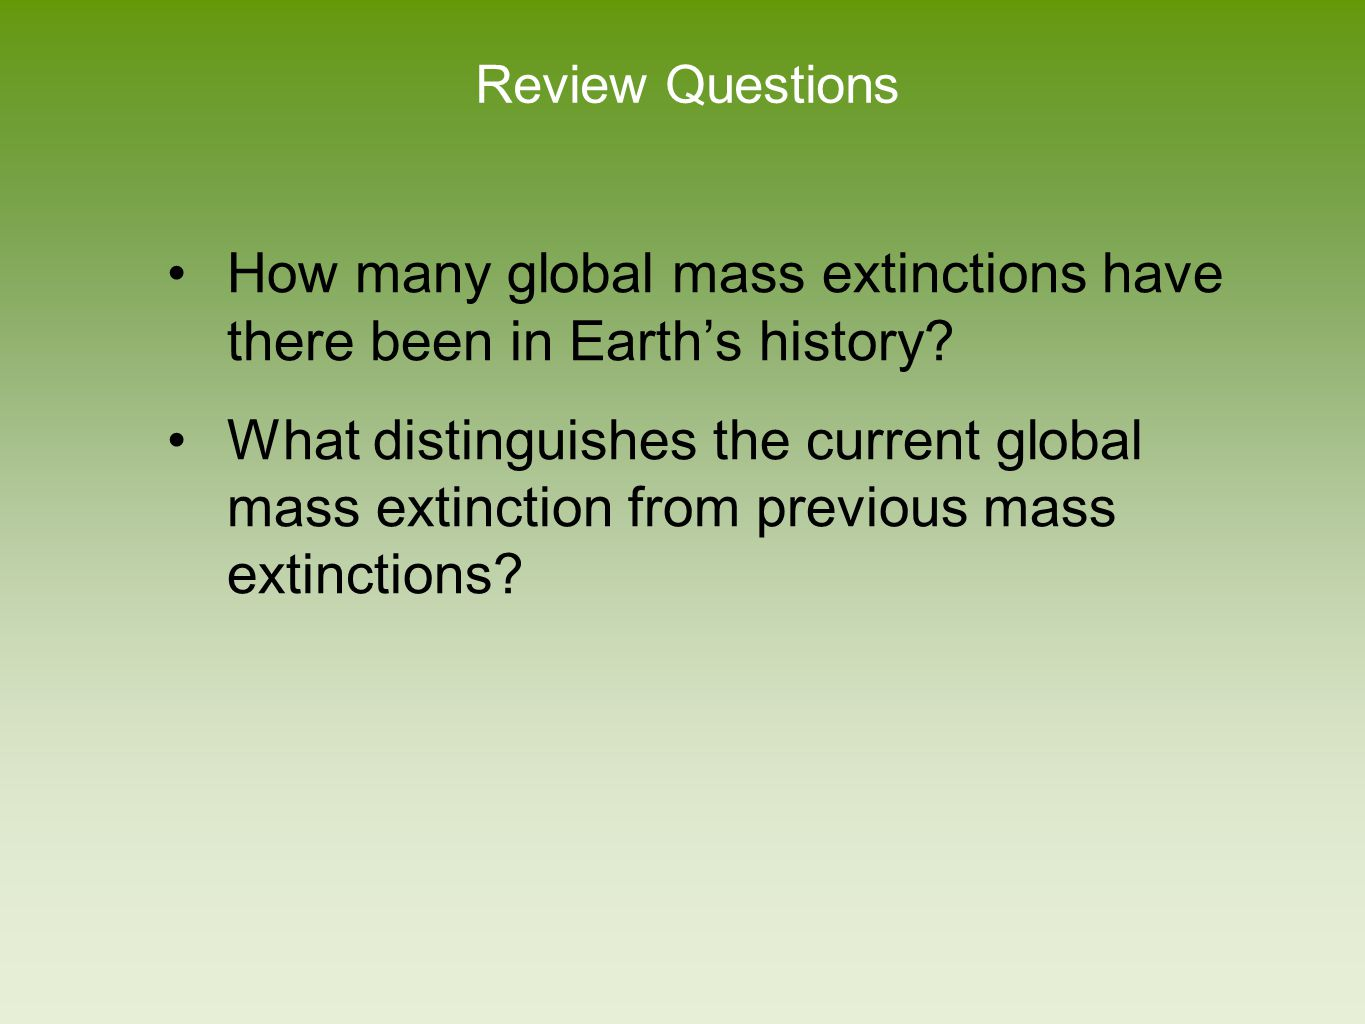 How many global mass extinctions have there been in Earth's history